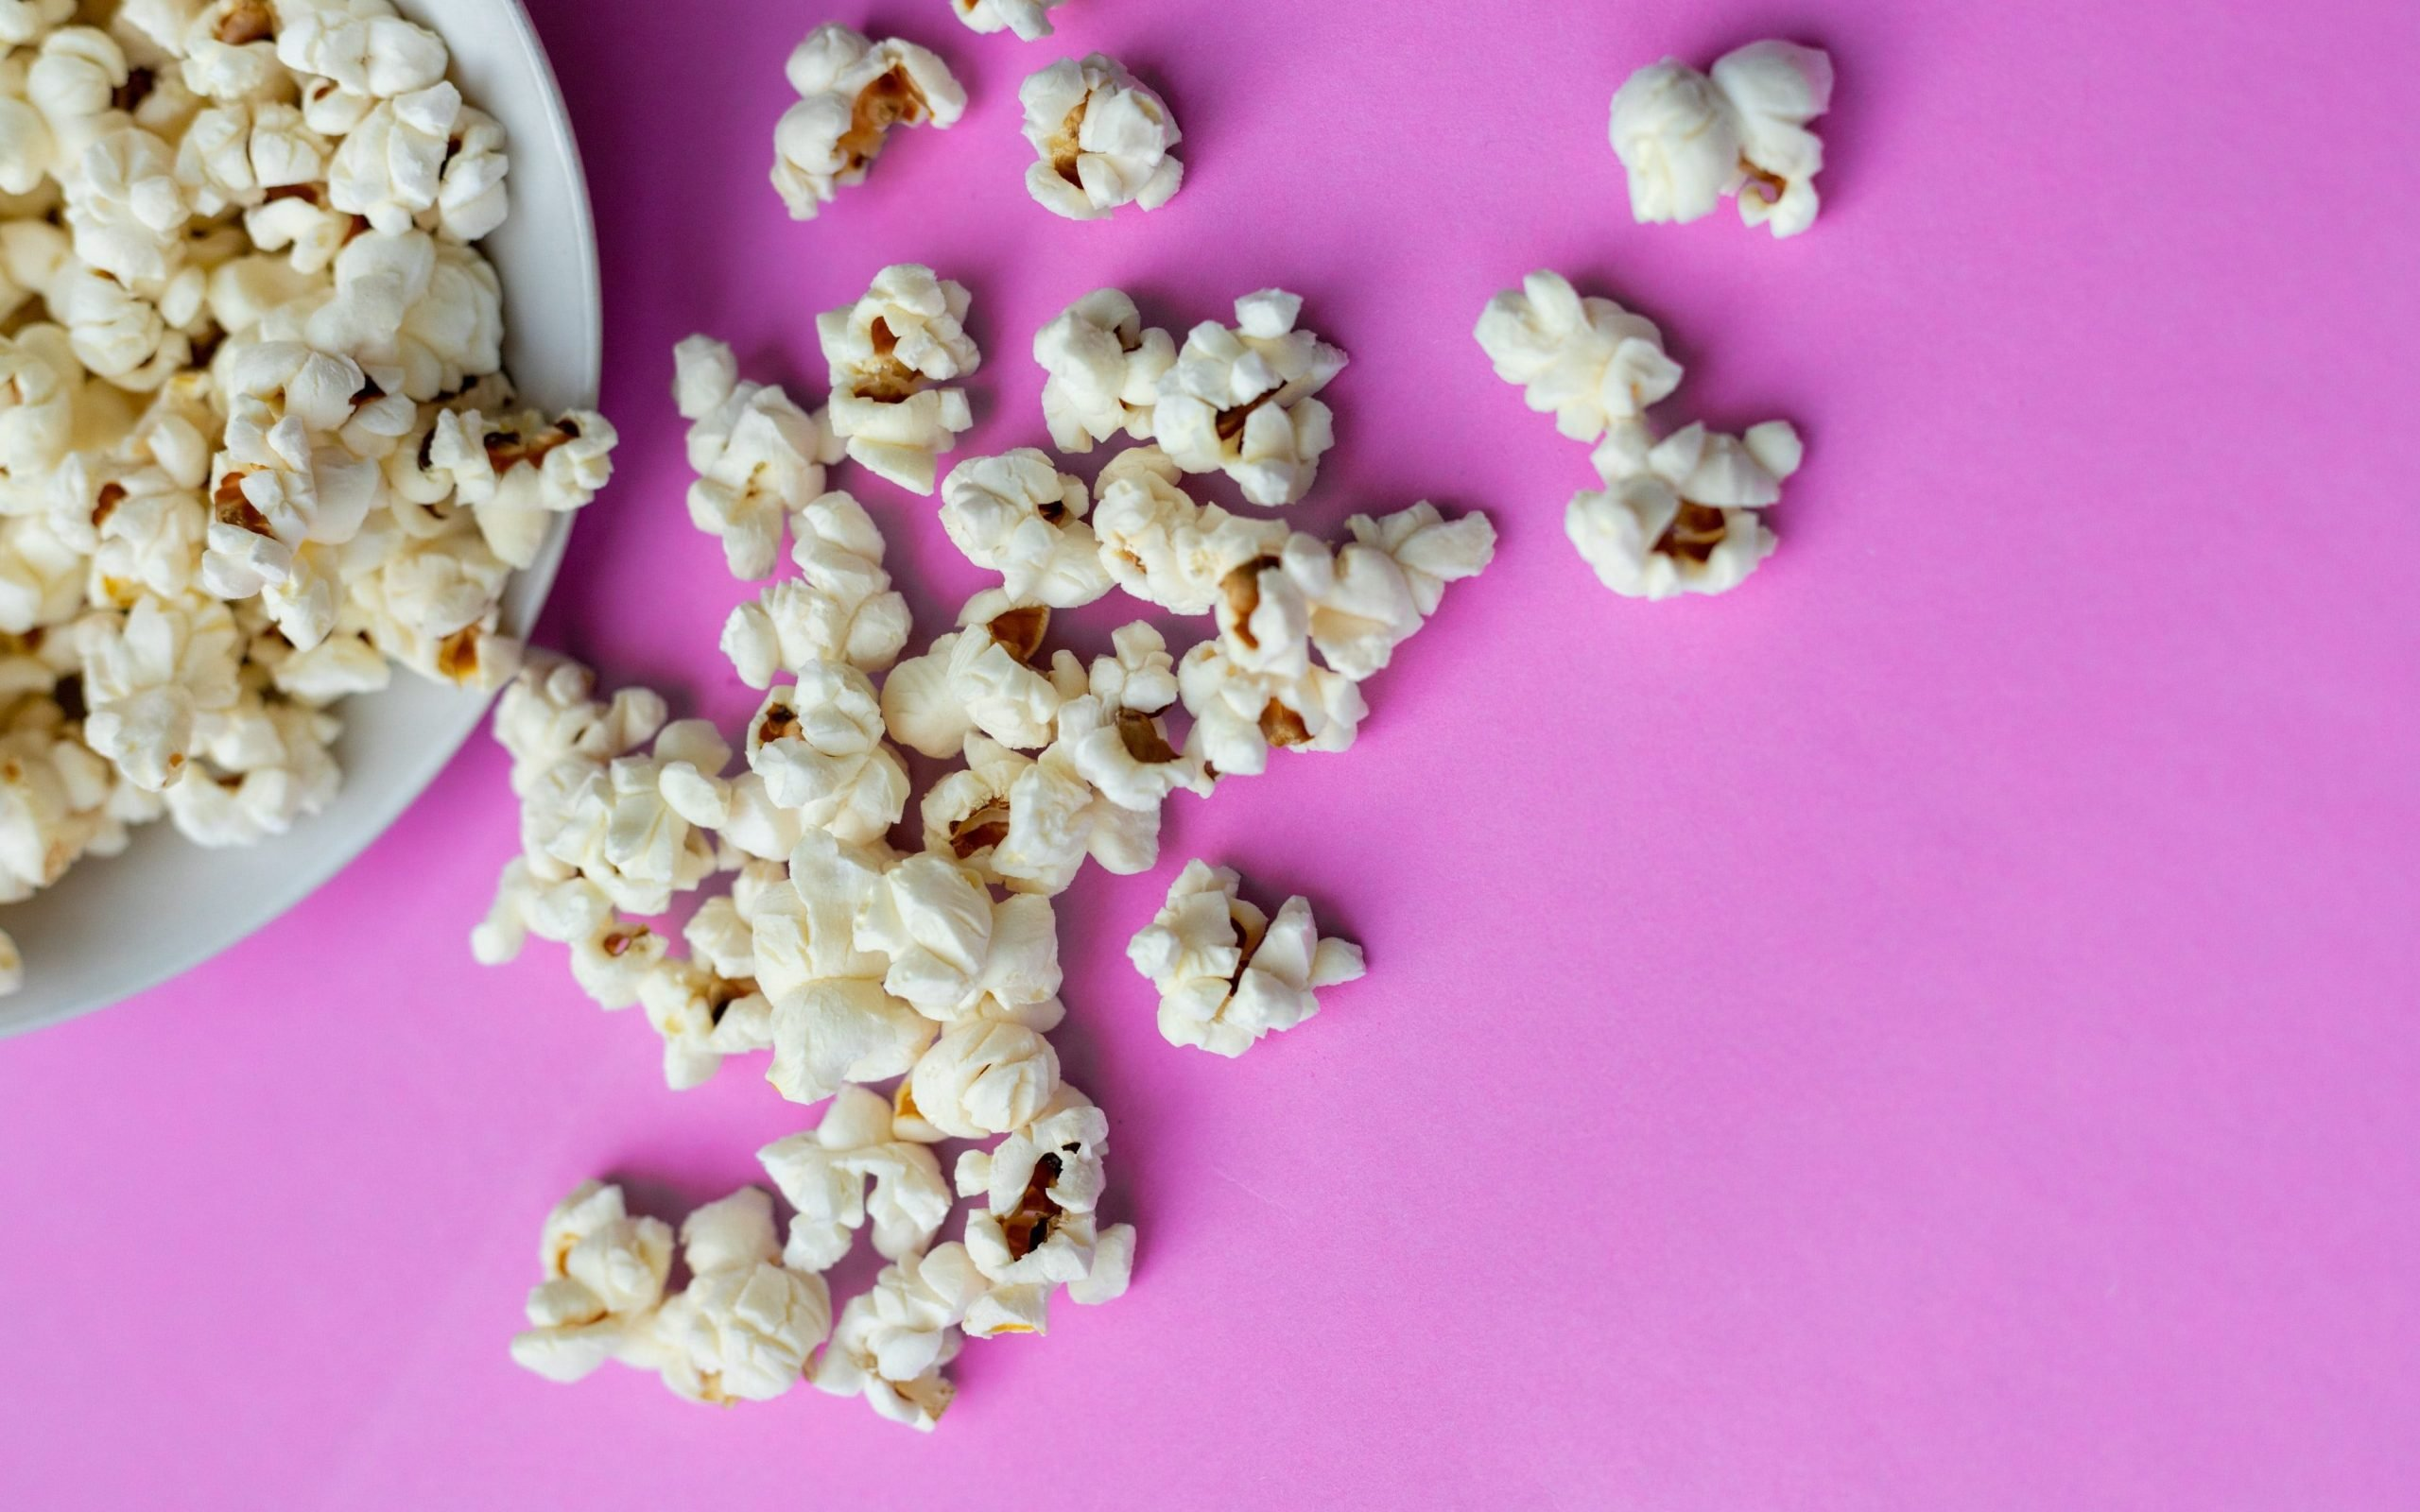 Popcorn is not suitable for low carb and keto